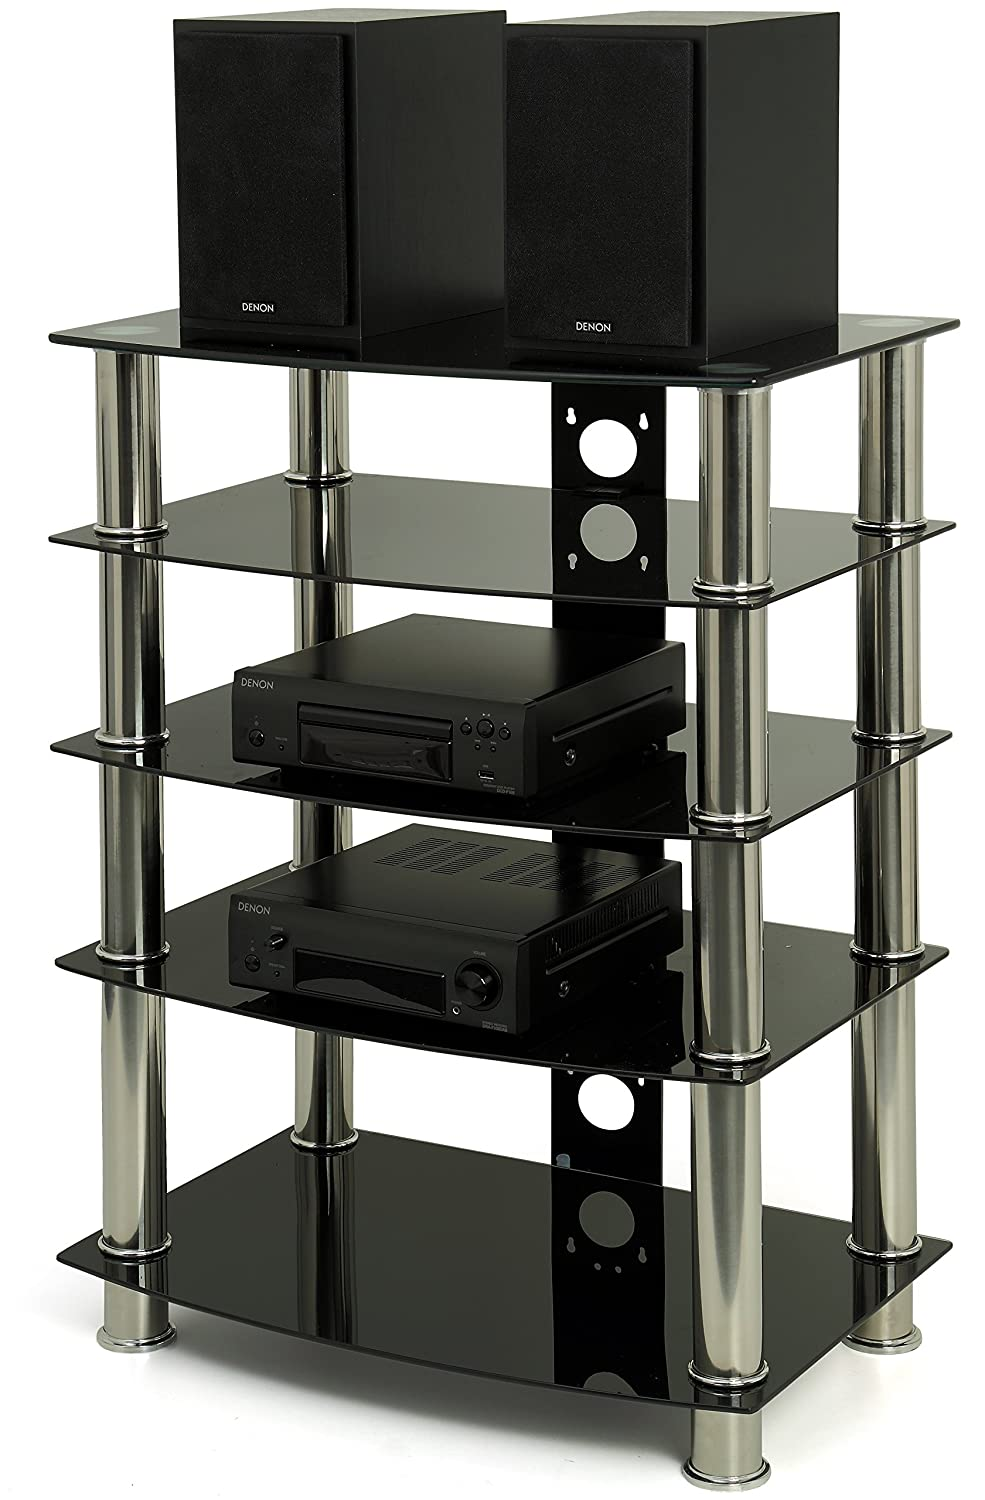 tv reck beautiful jual walnut furniture cantilever tv stand curved coffee table u dvd rack with. Black Bedroom Furniture Sets. Home Design Ideas